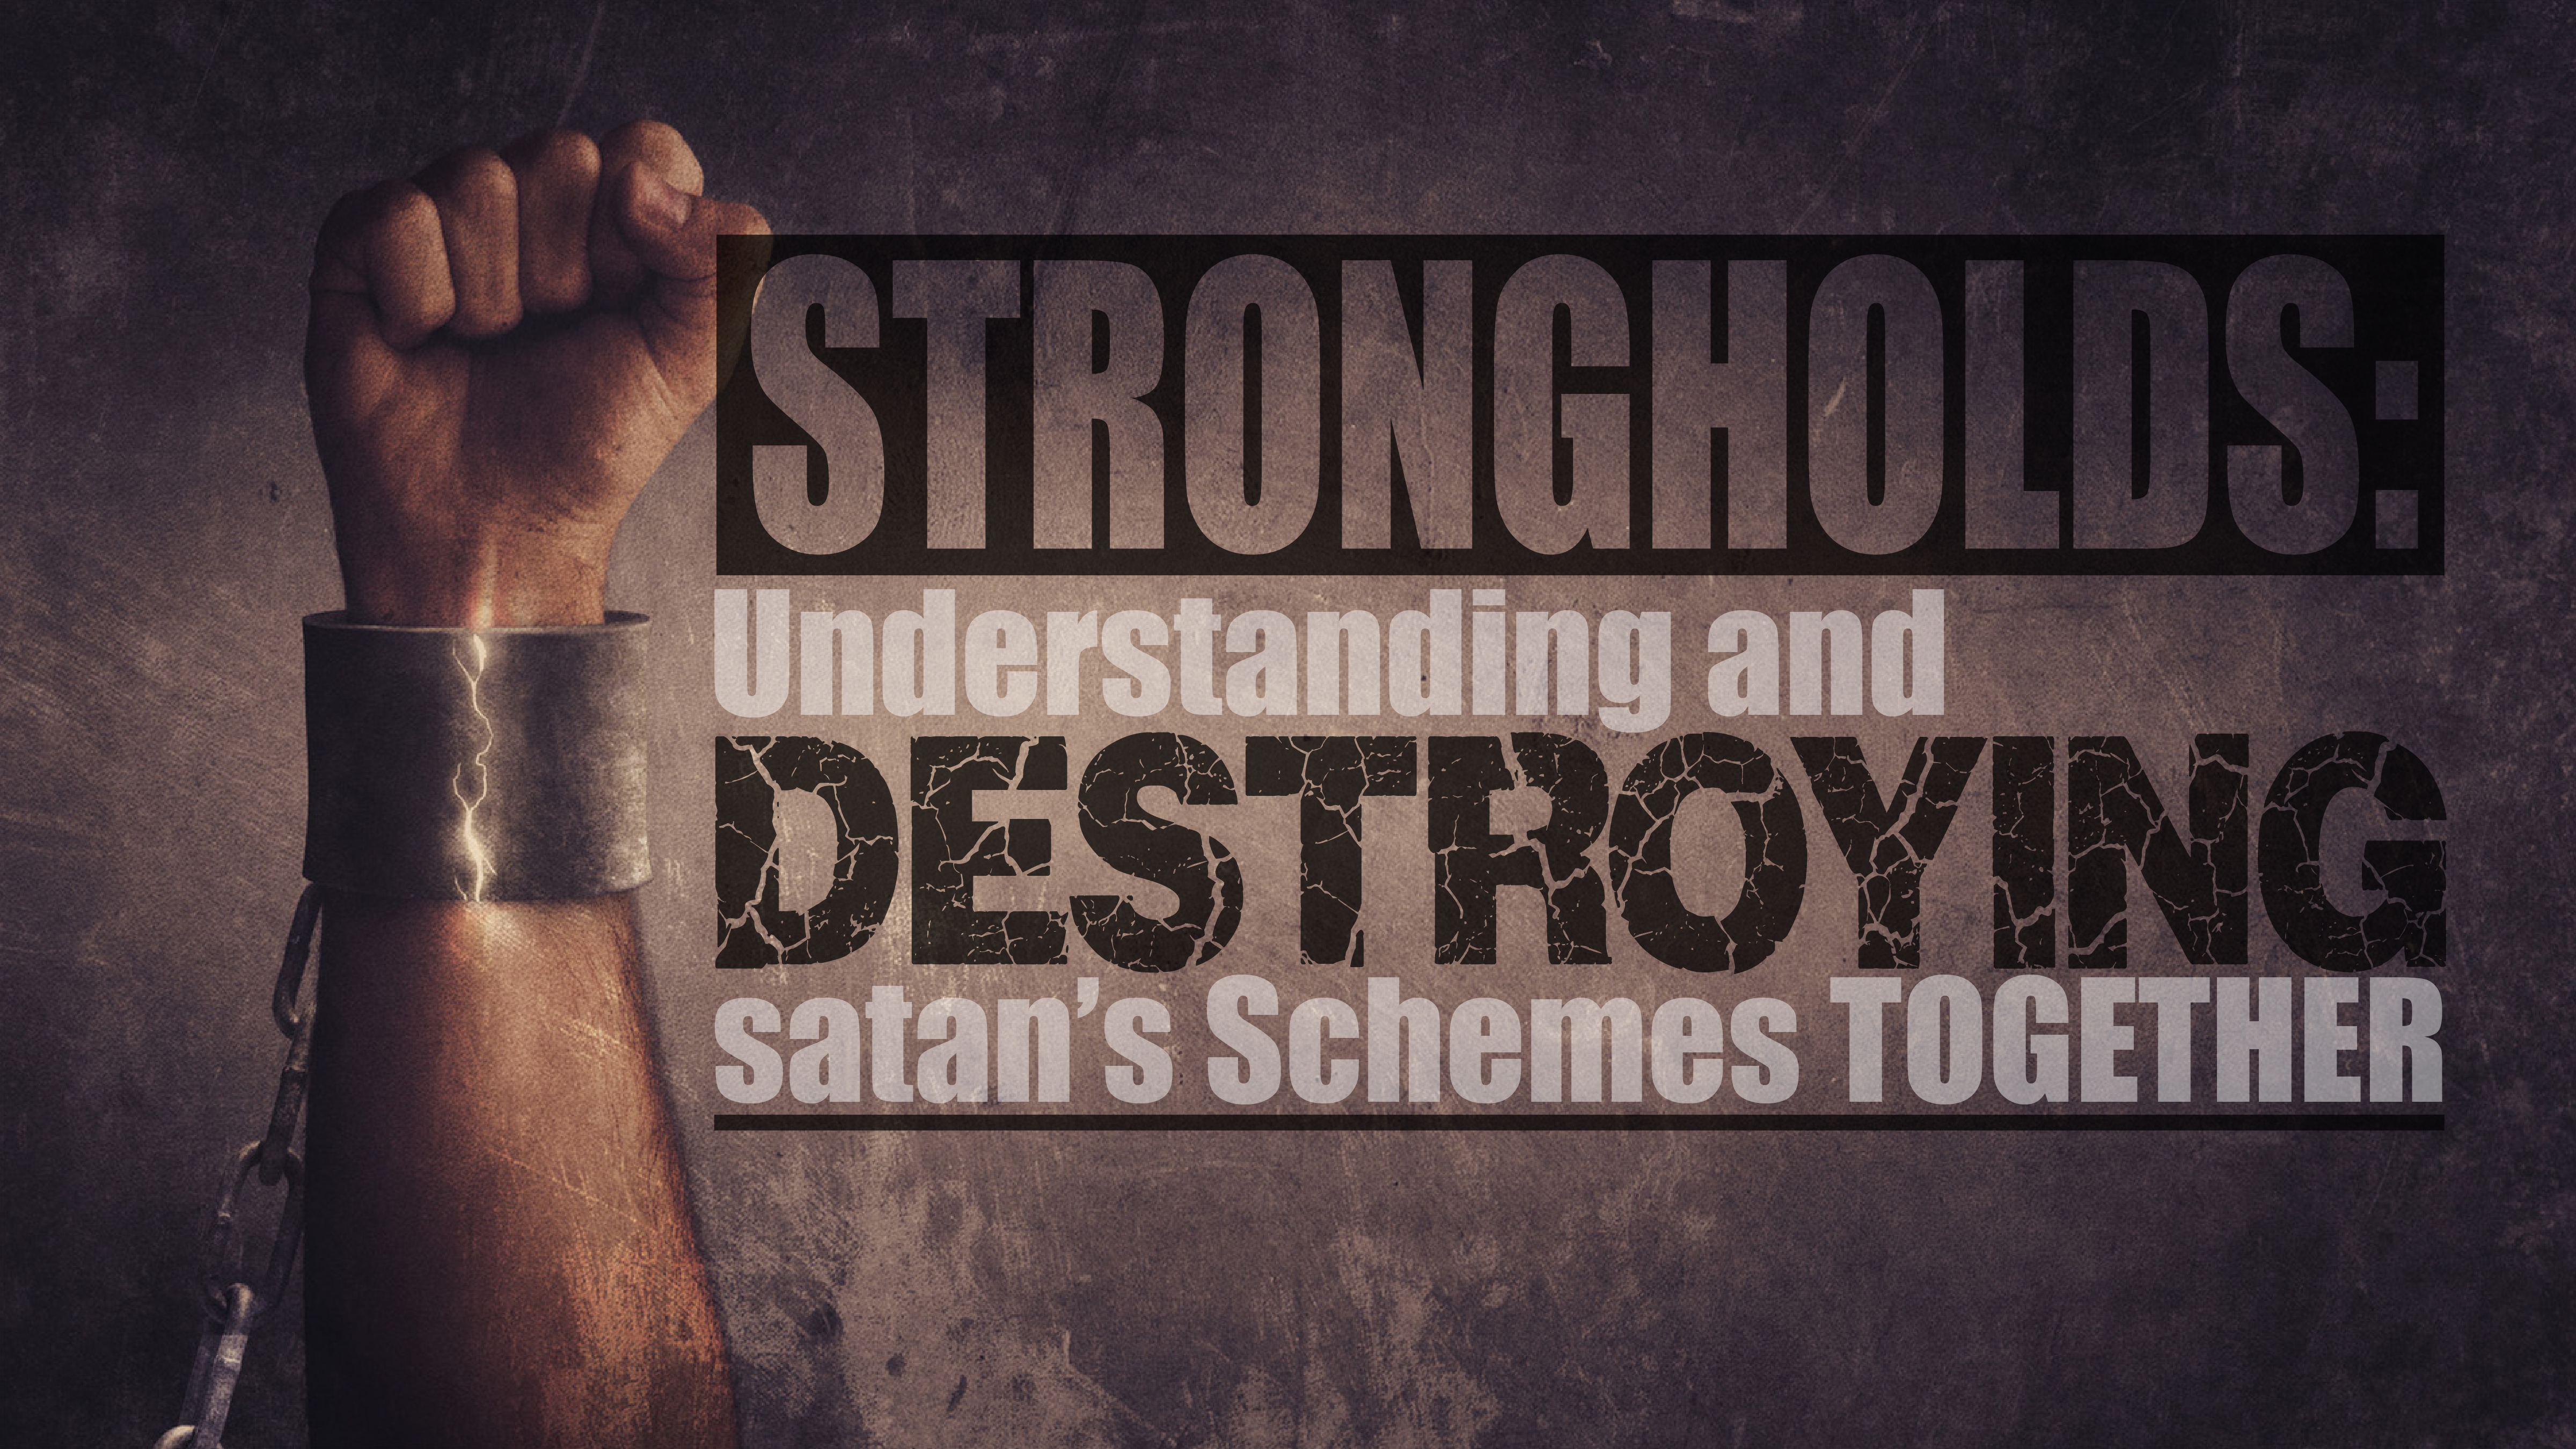 STRONGHOLDS